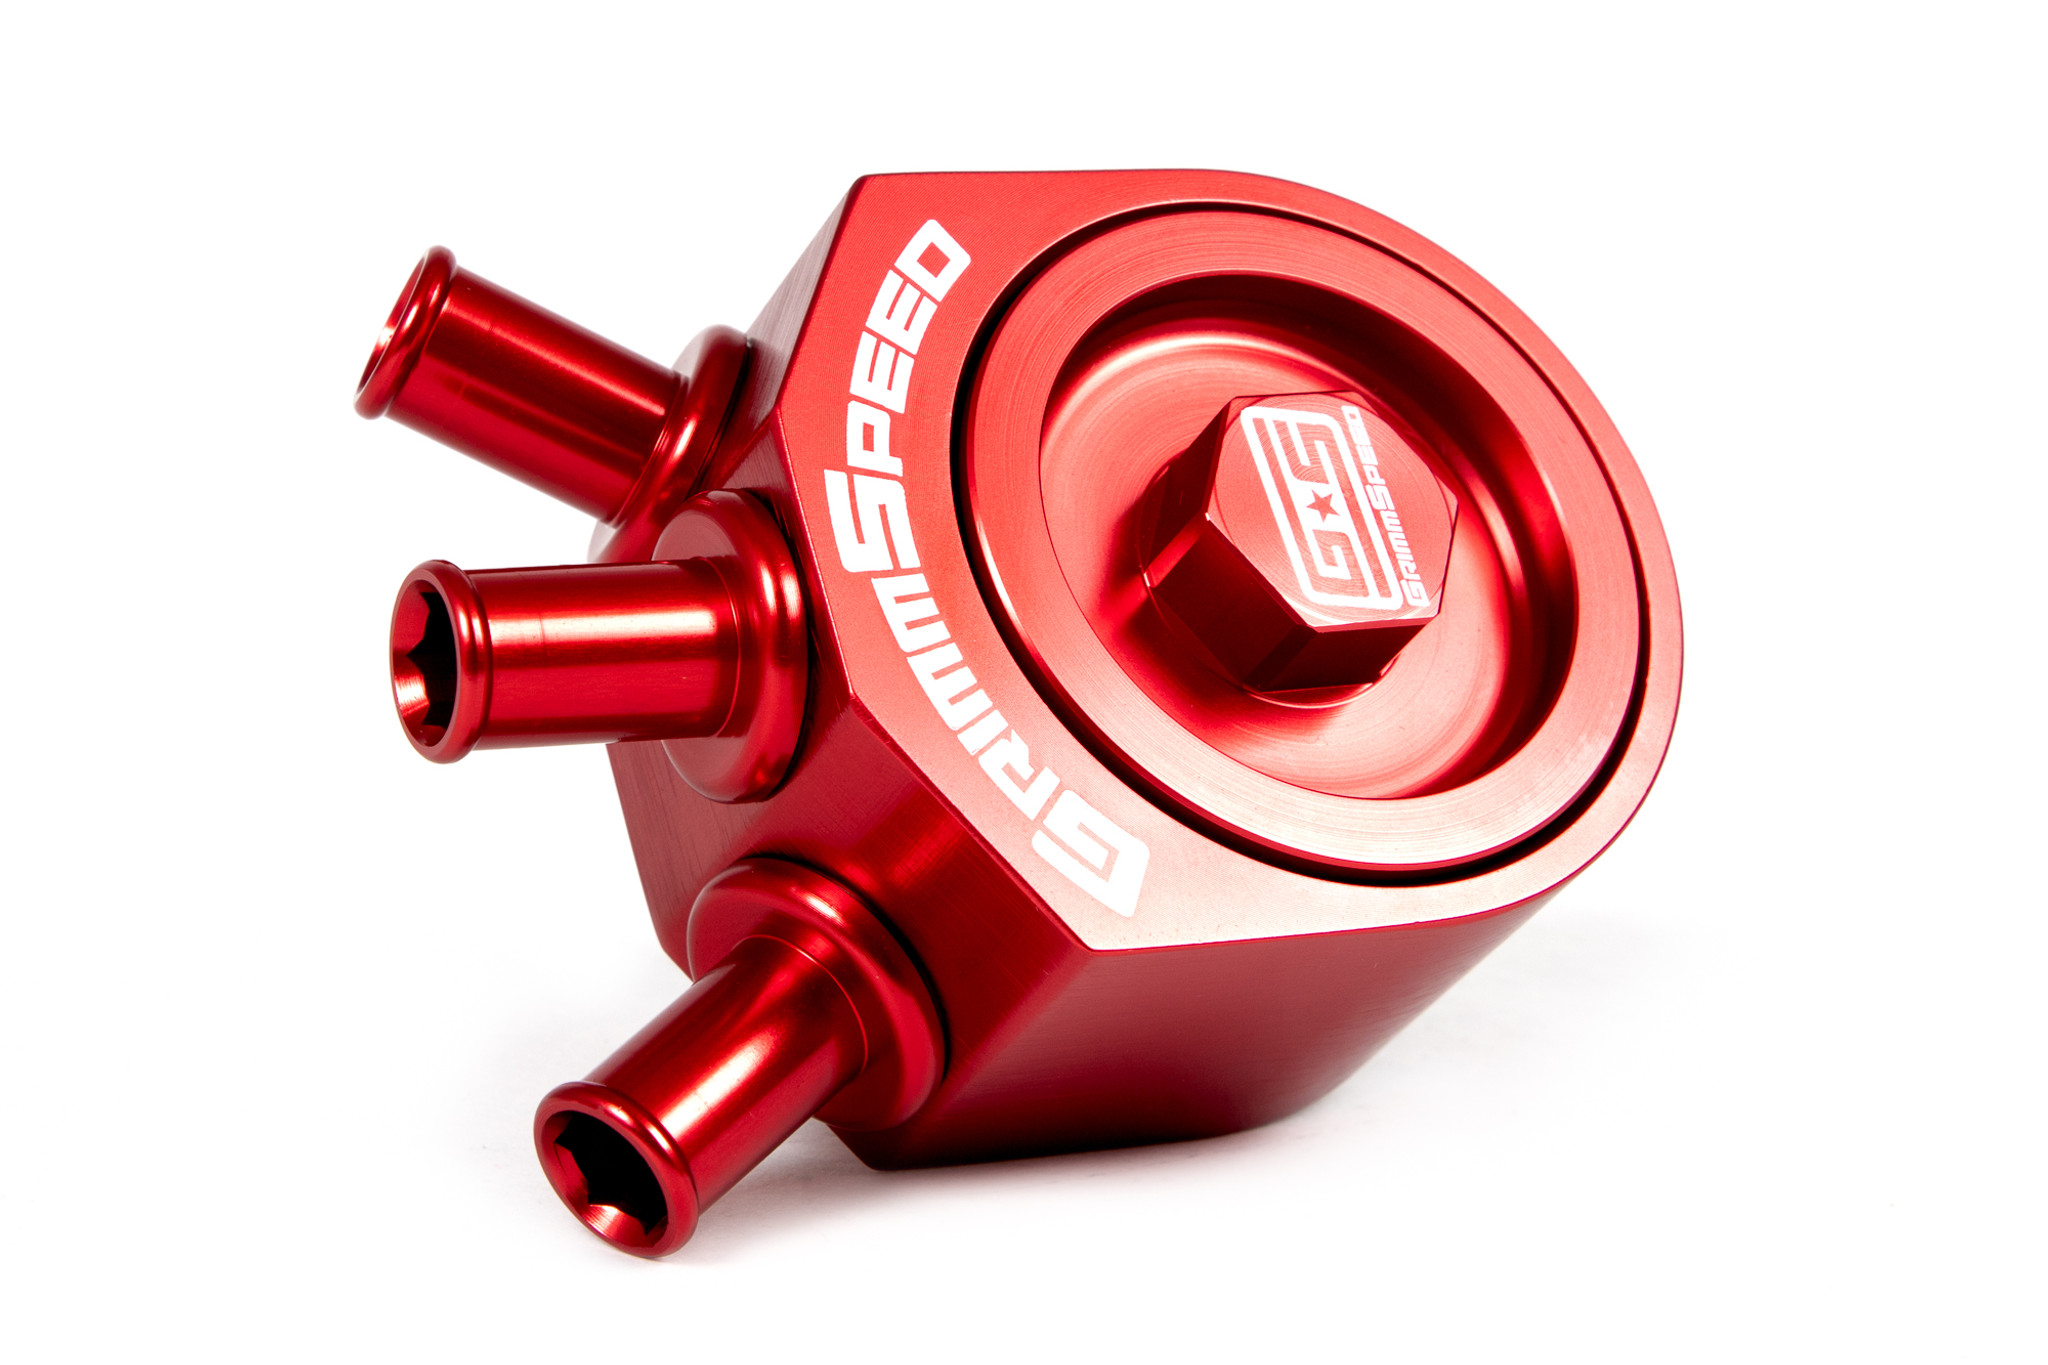 Grimmspeed Red Air 09 FXT 08-14 WRX Oil Separator for Subaru 05-09 LGT